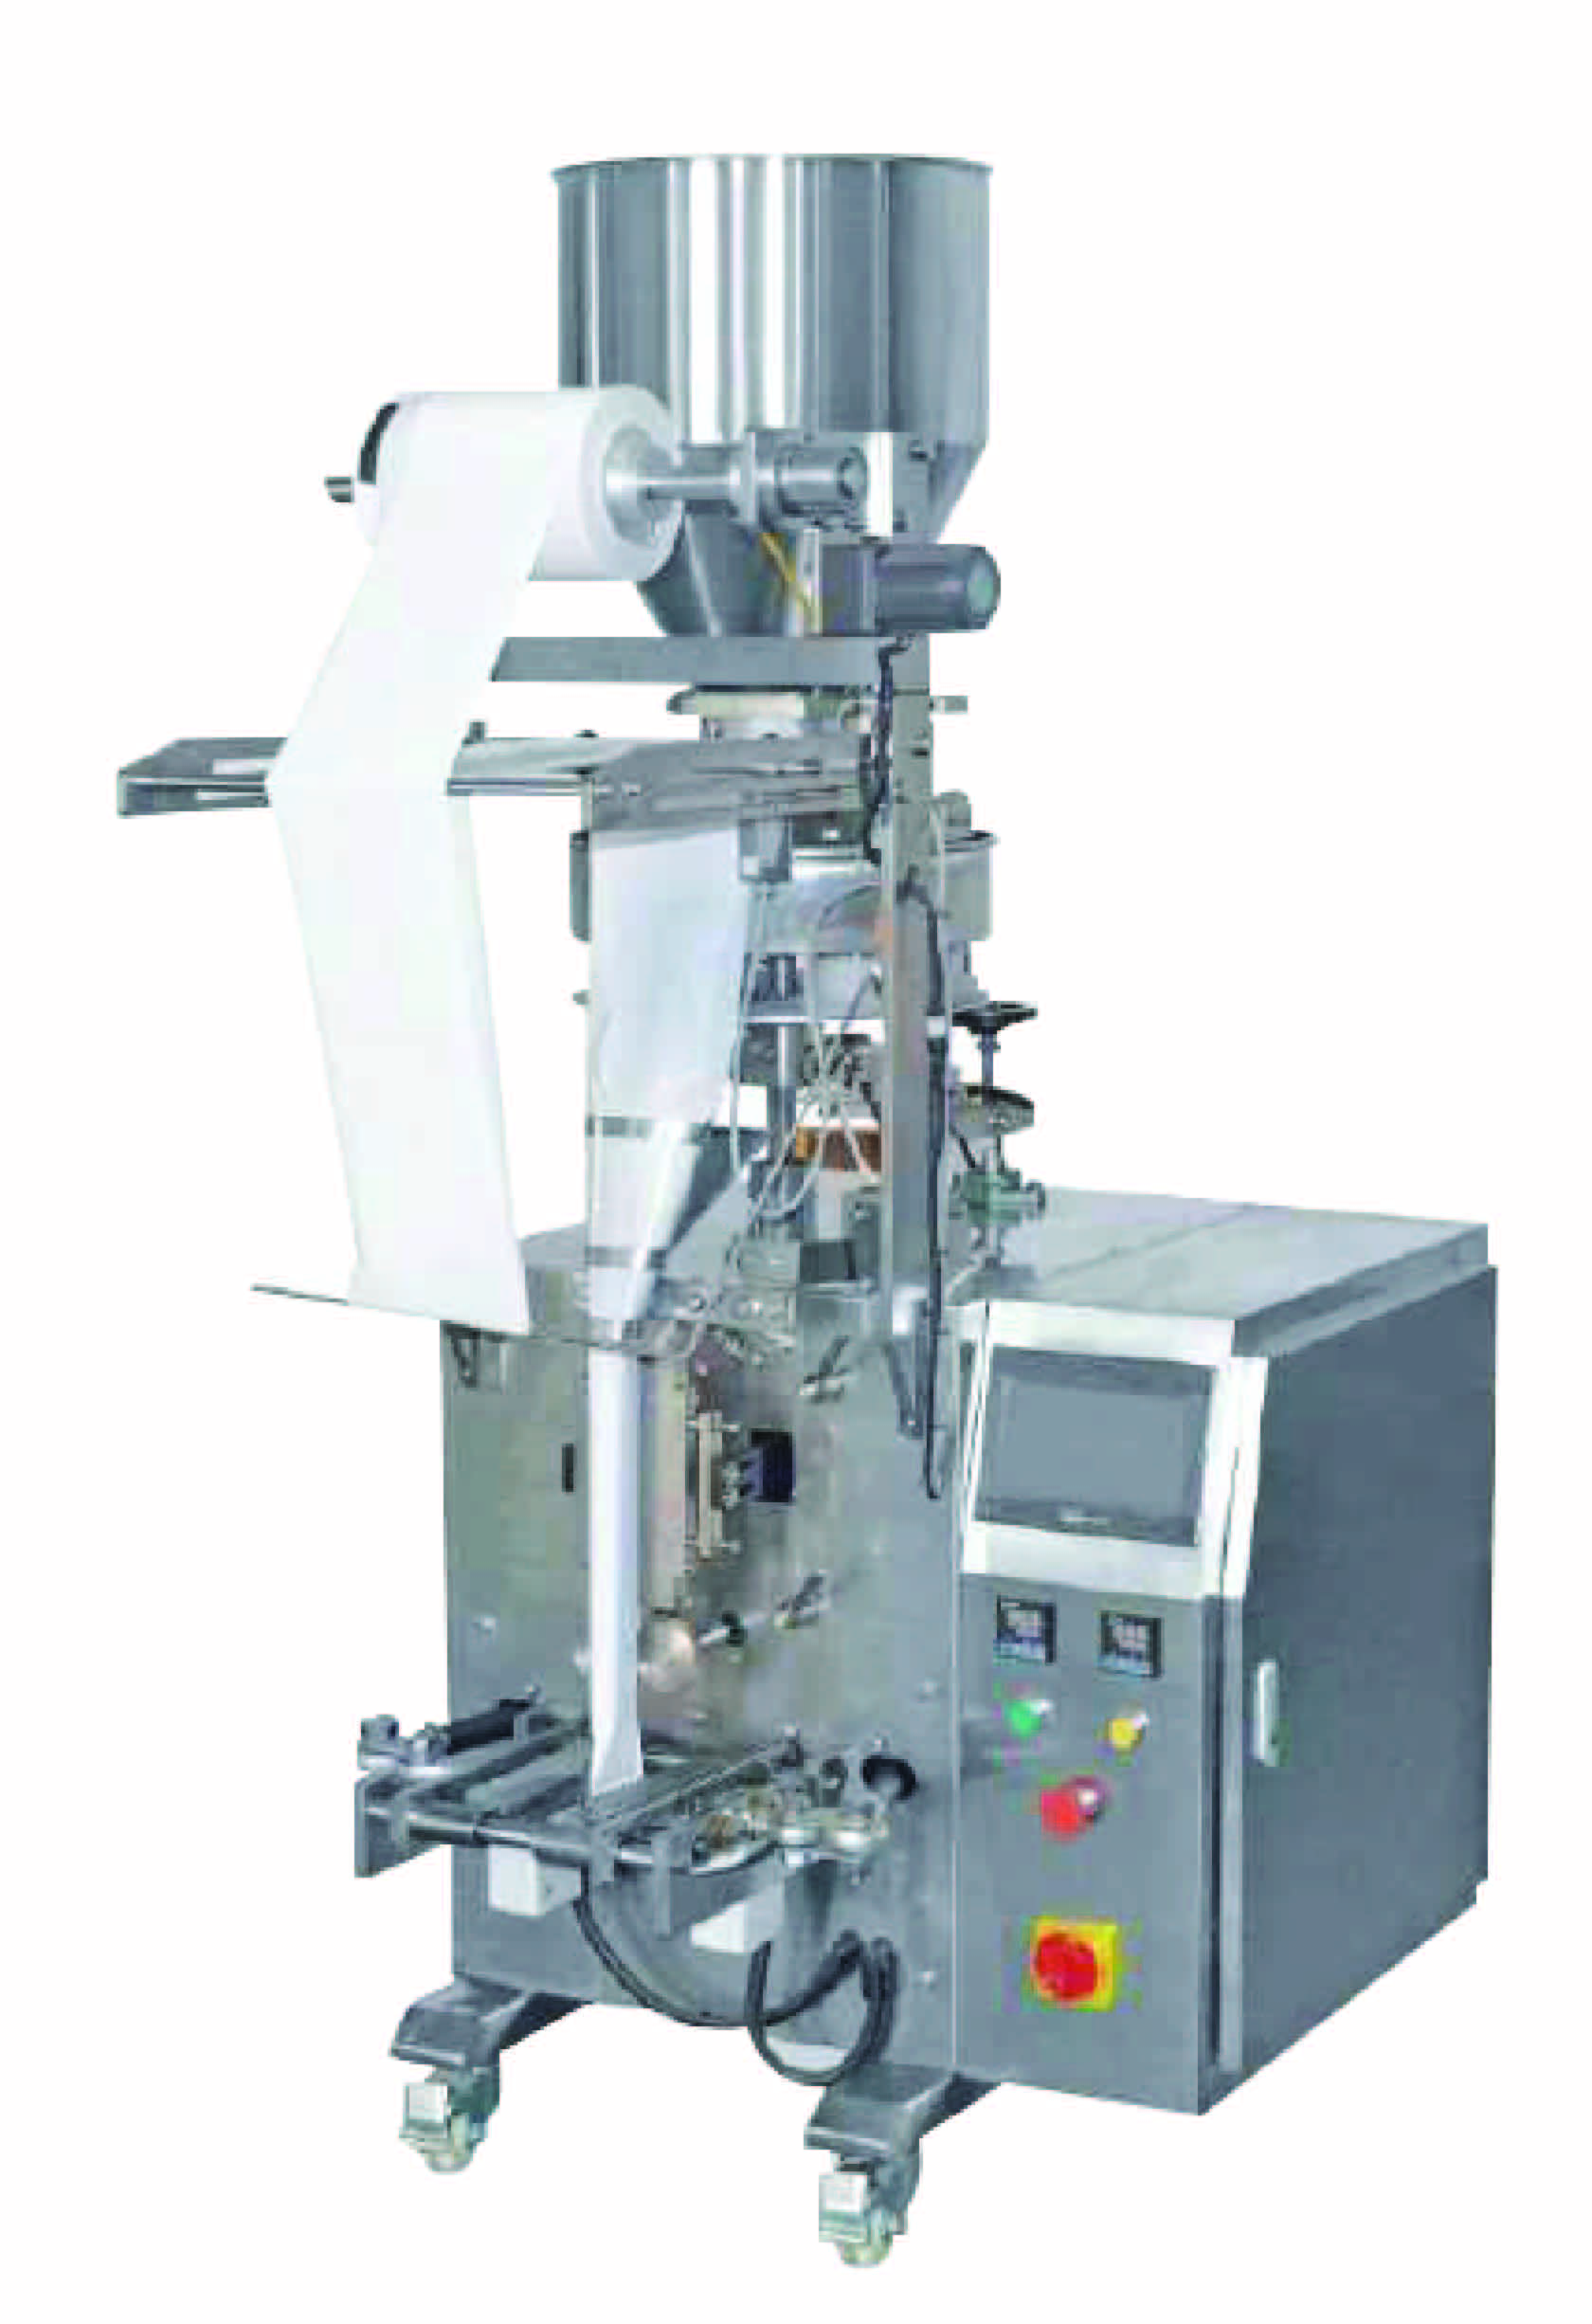 2-9_hal1 B (2) SMALL VERTICAL VOLUMETRIC PACKING MACHINE MSP-V160V